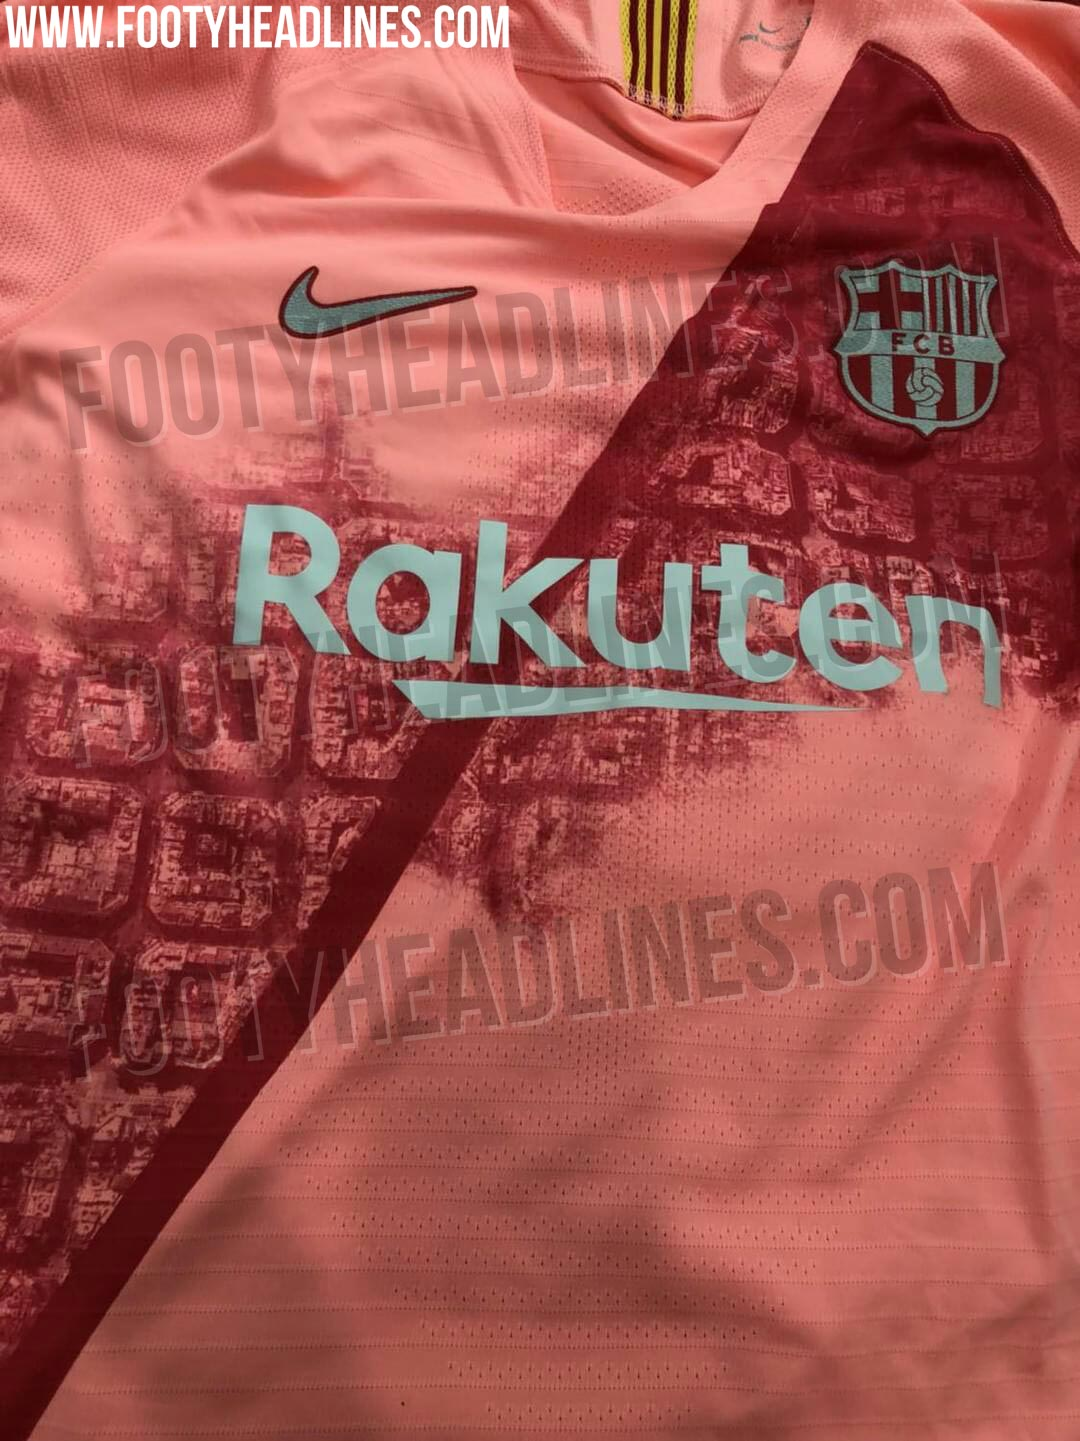 1fee73d25 Footy Headlines have shared leaked images of the shirt before it is  officially released in the next couple of weeks.